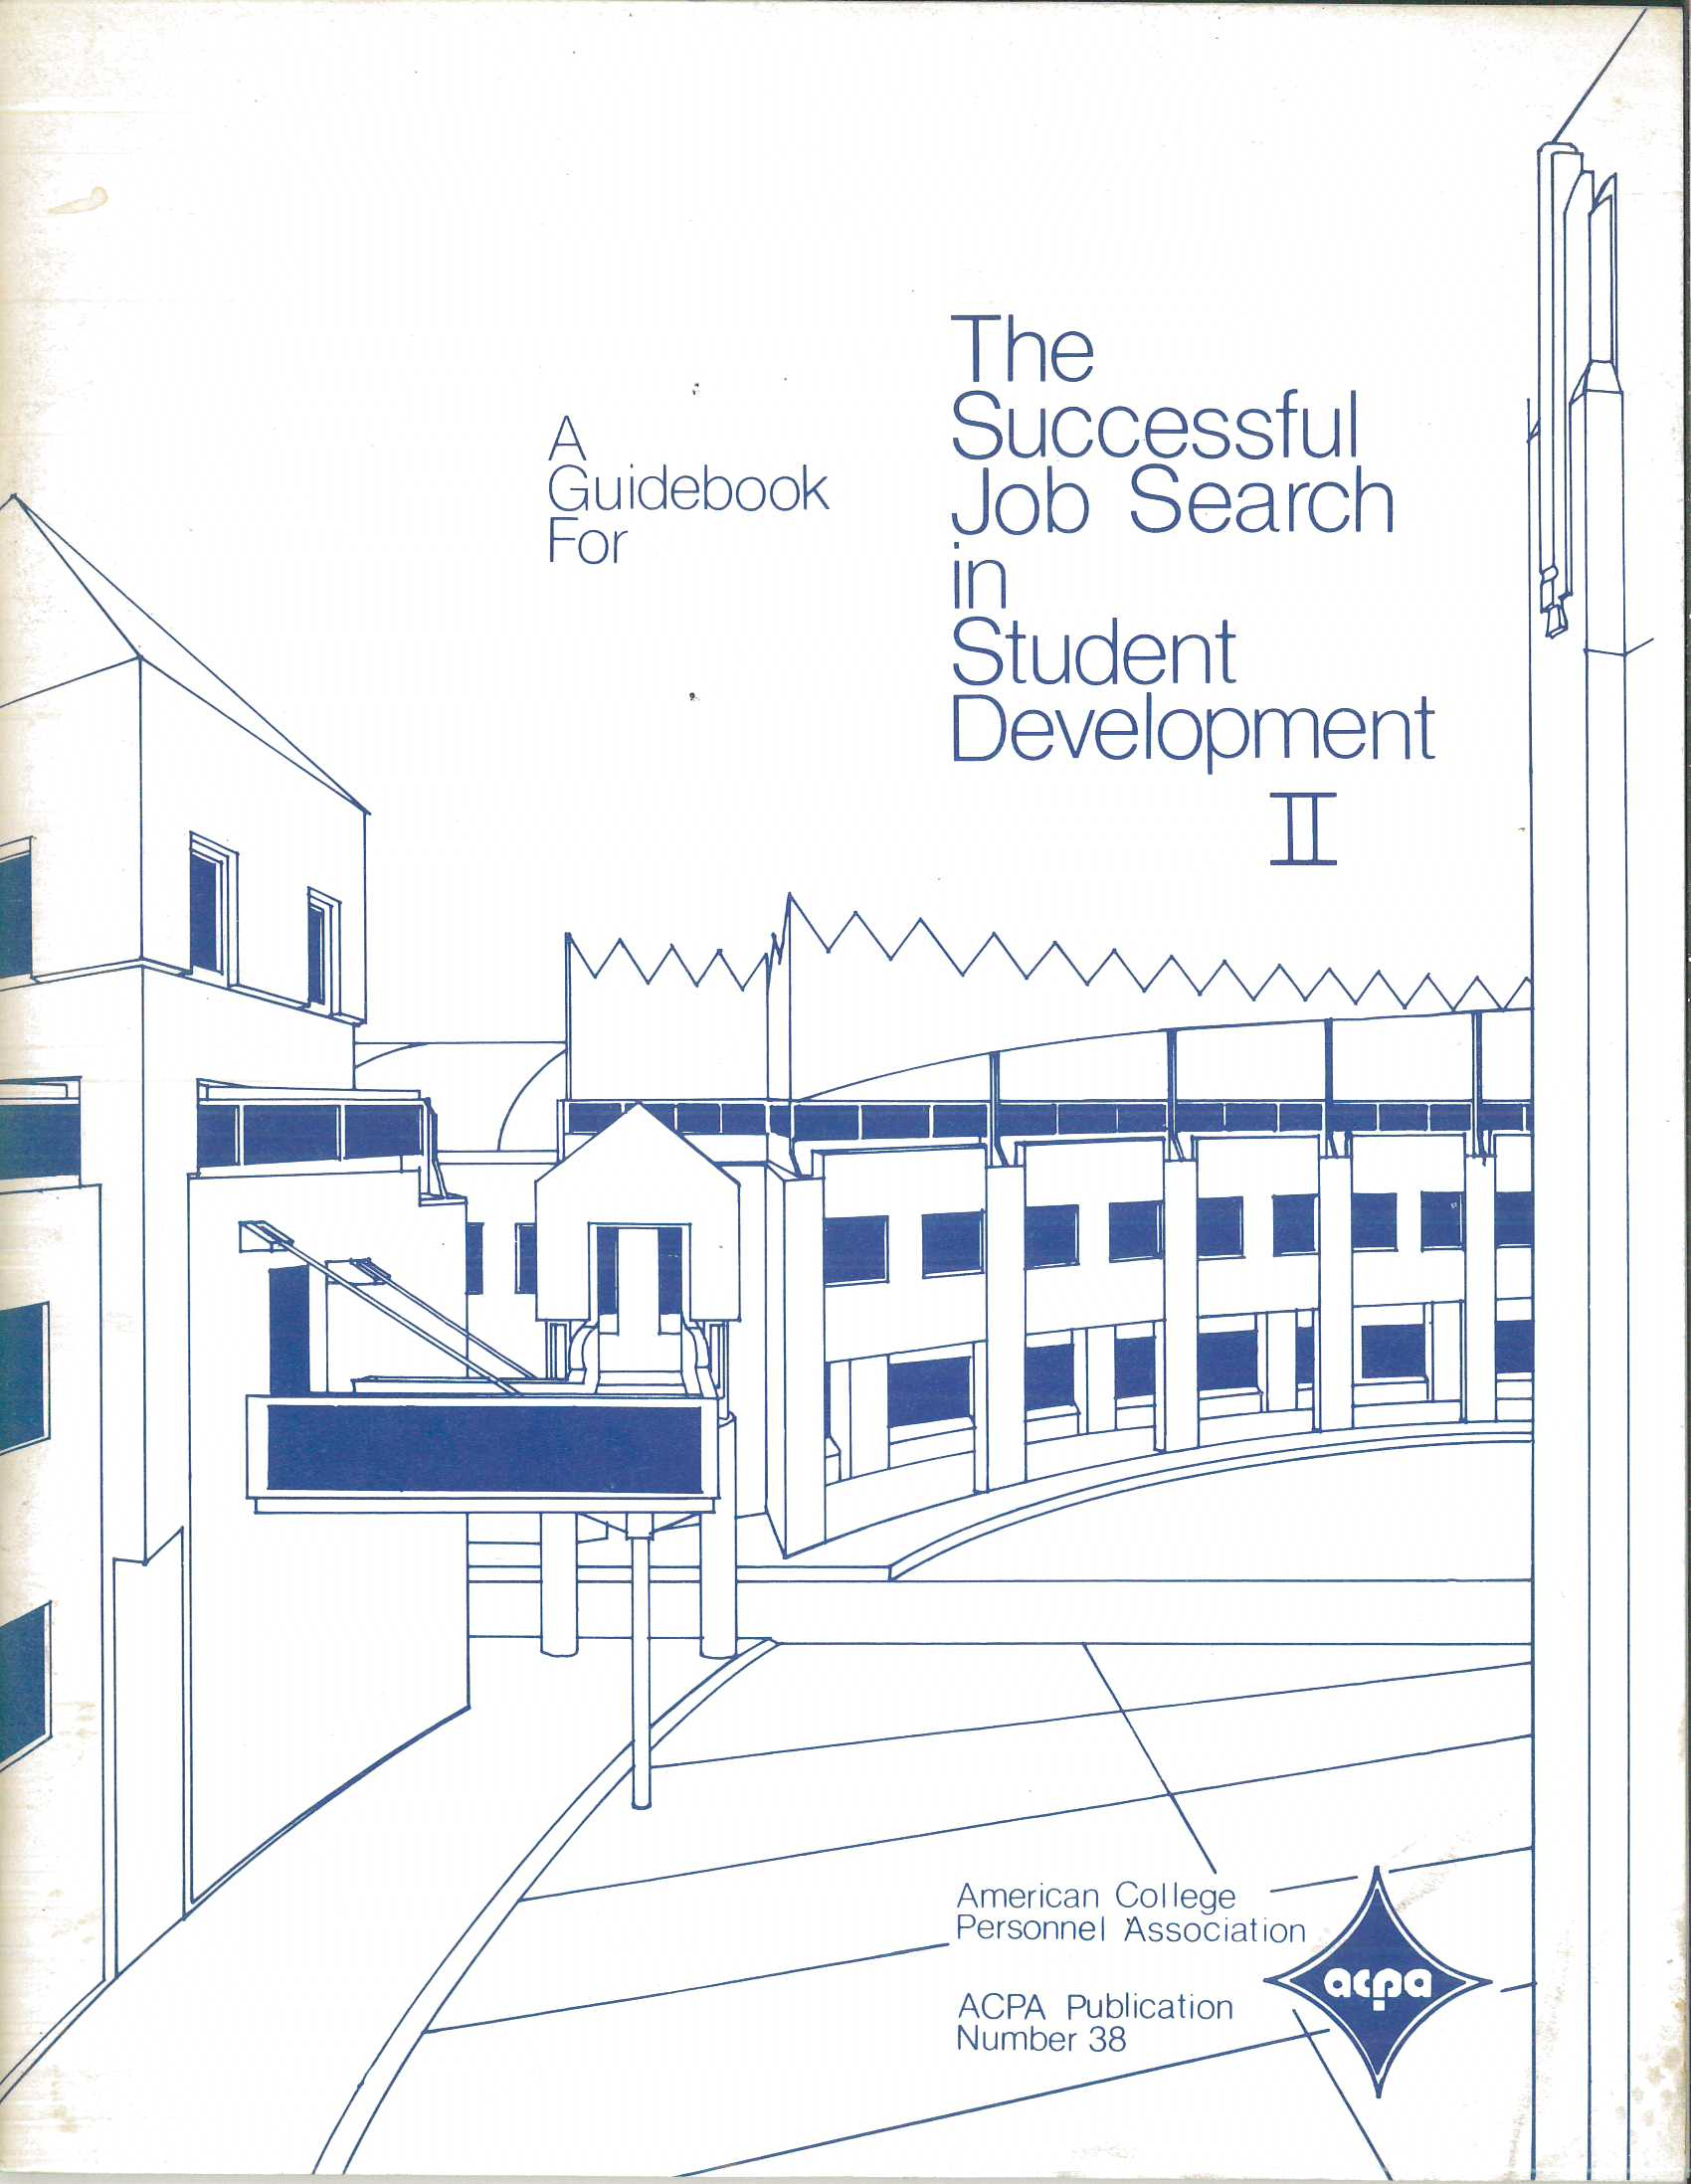 A Guidebook for the Successful Job Search in Student Development II